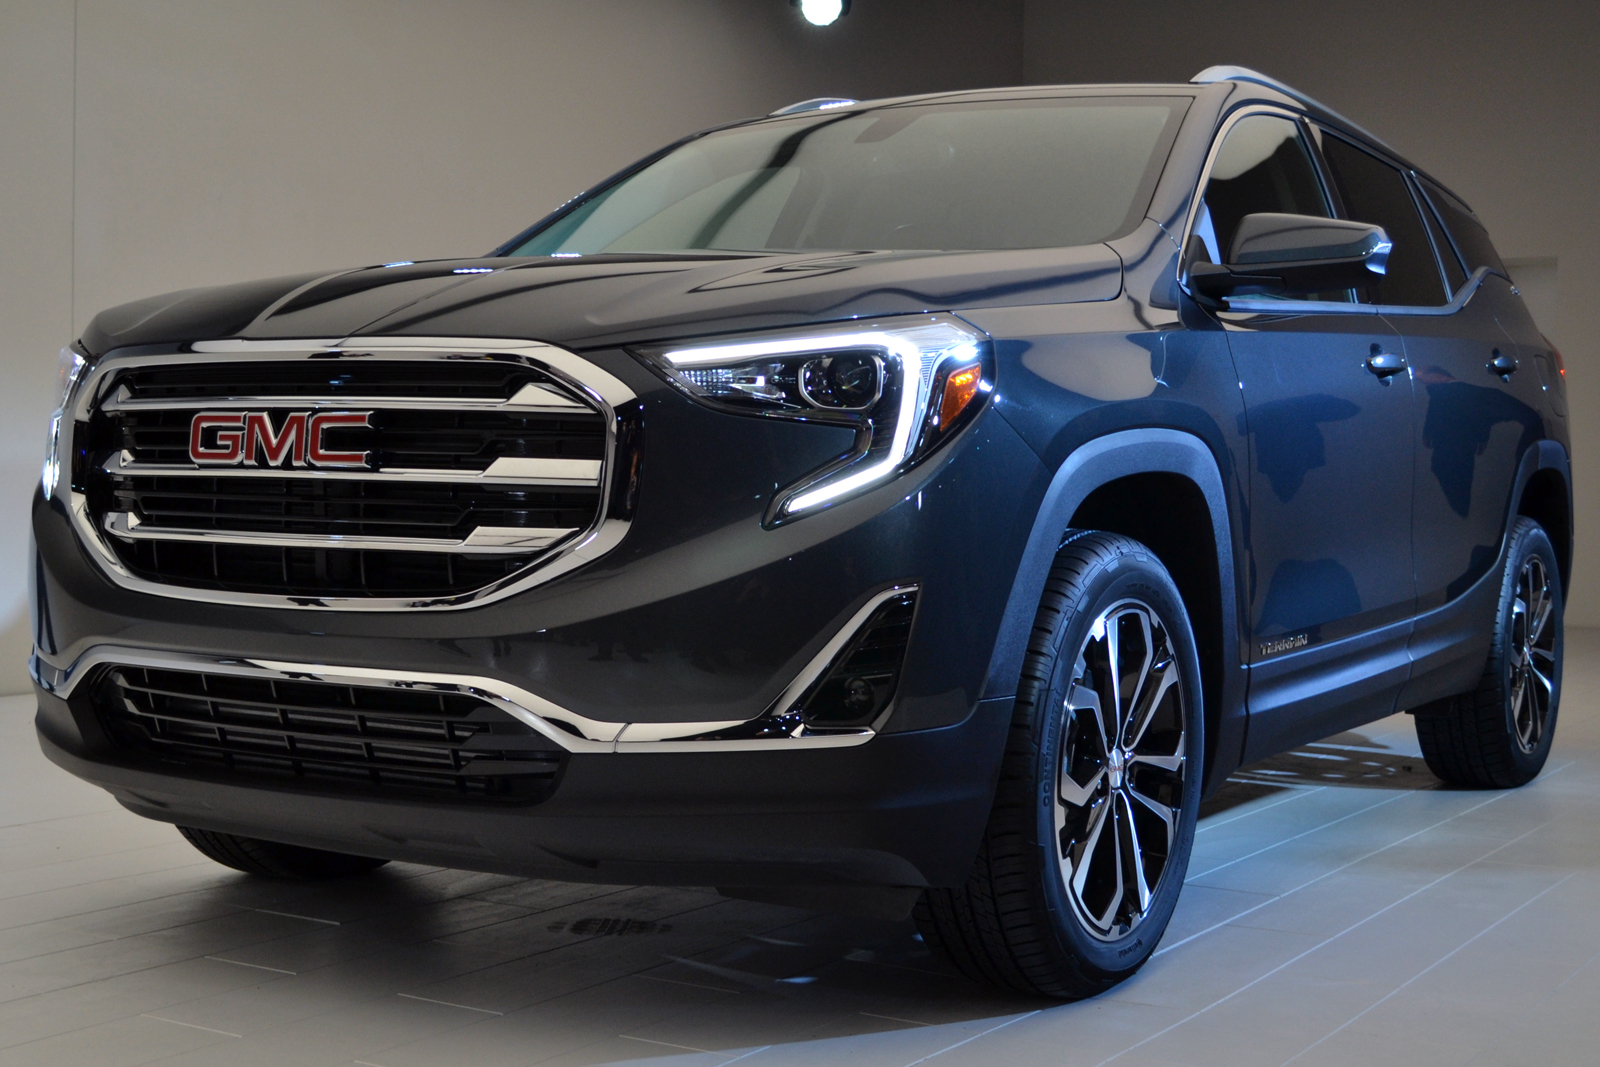 2018 Gmc Terrain Gets 3 Turbo Engine Choices Including Diesel